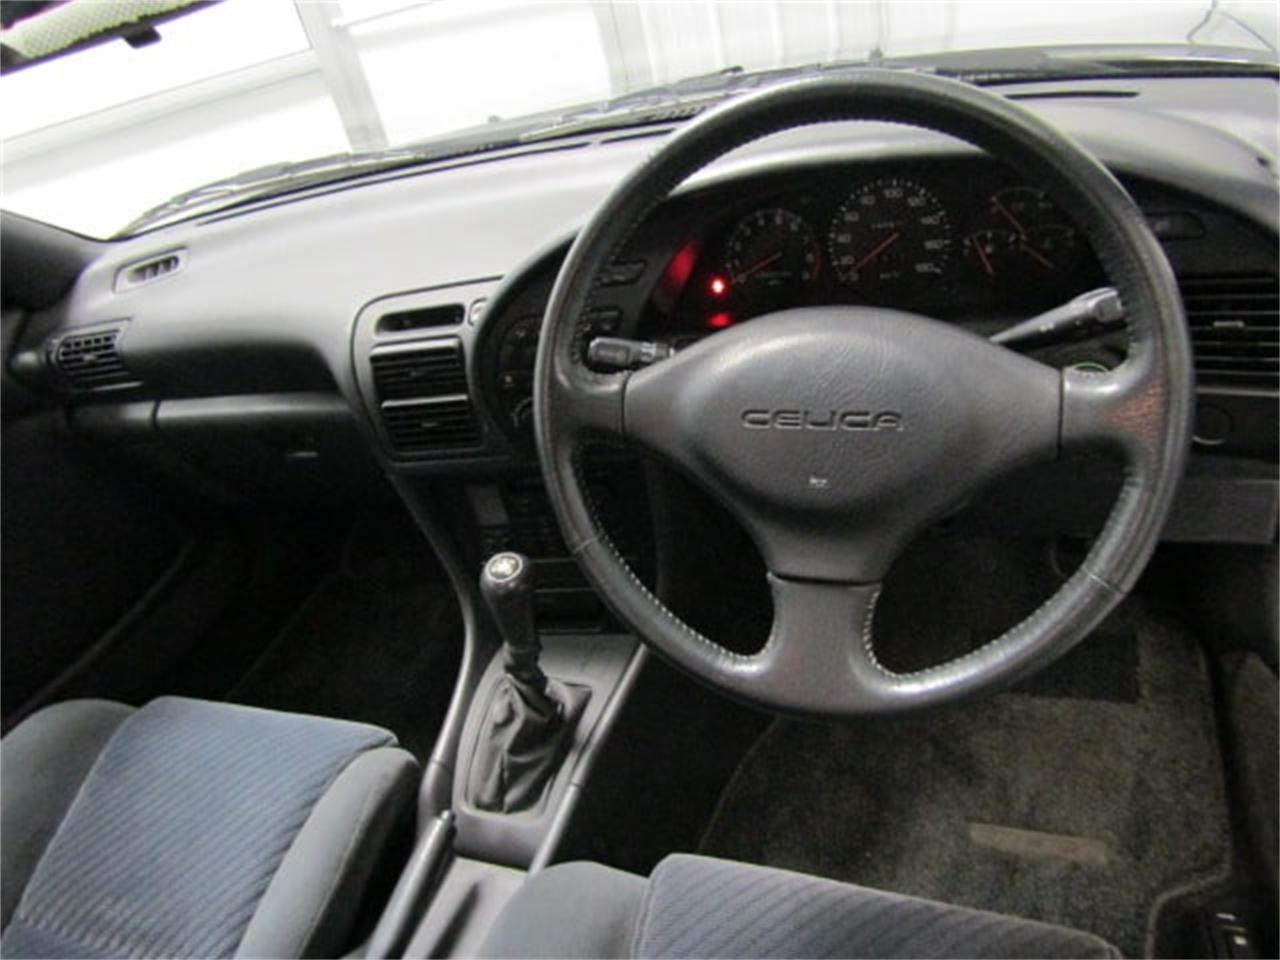 Large Picture of '89 Toyota Celica located in Christiansburg Virginia - $10,831.00 - JM31